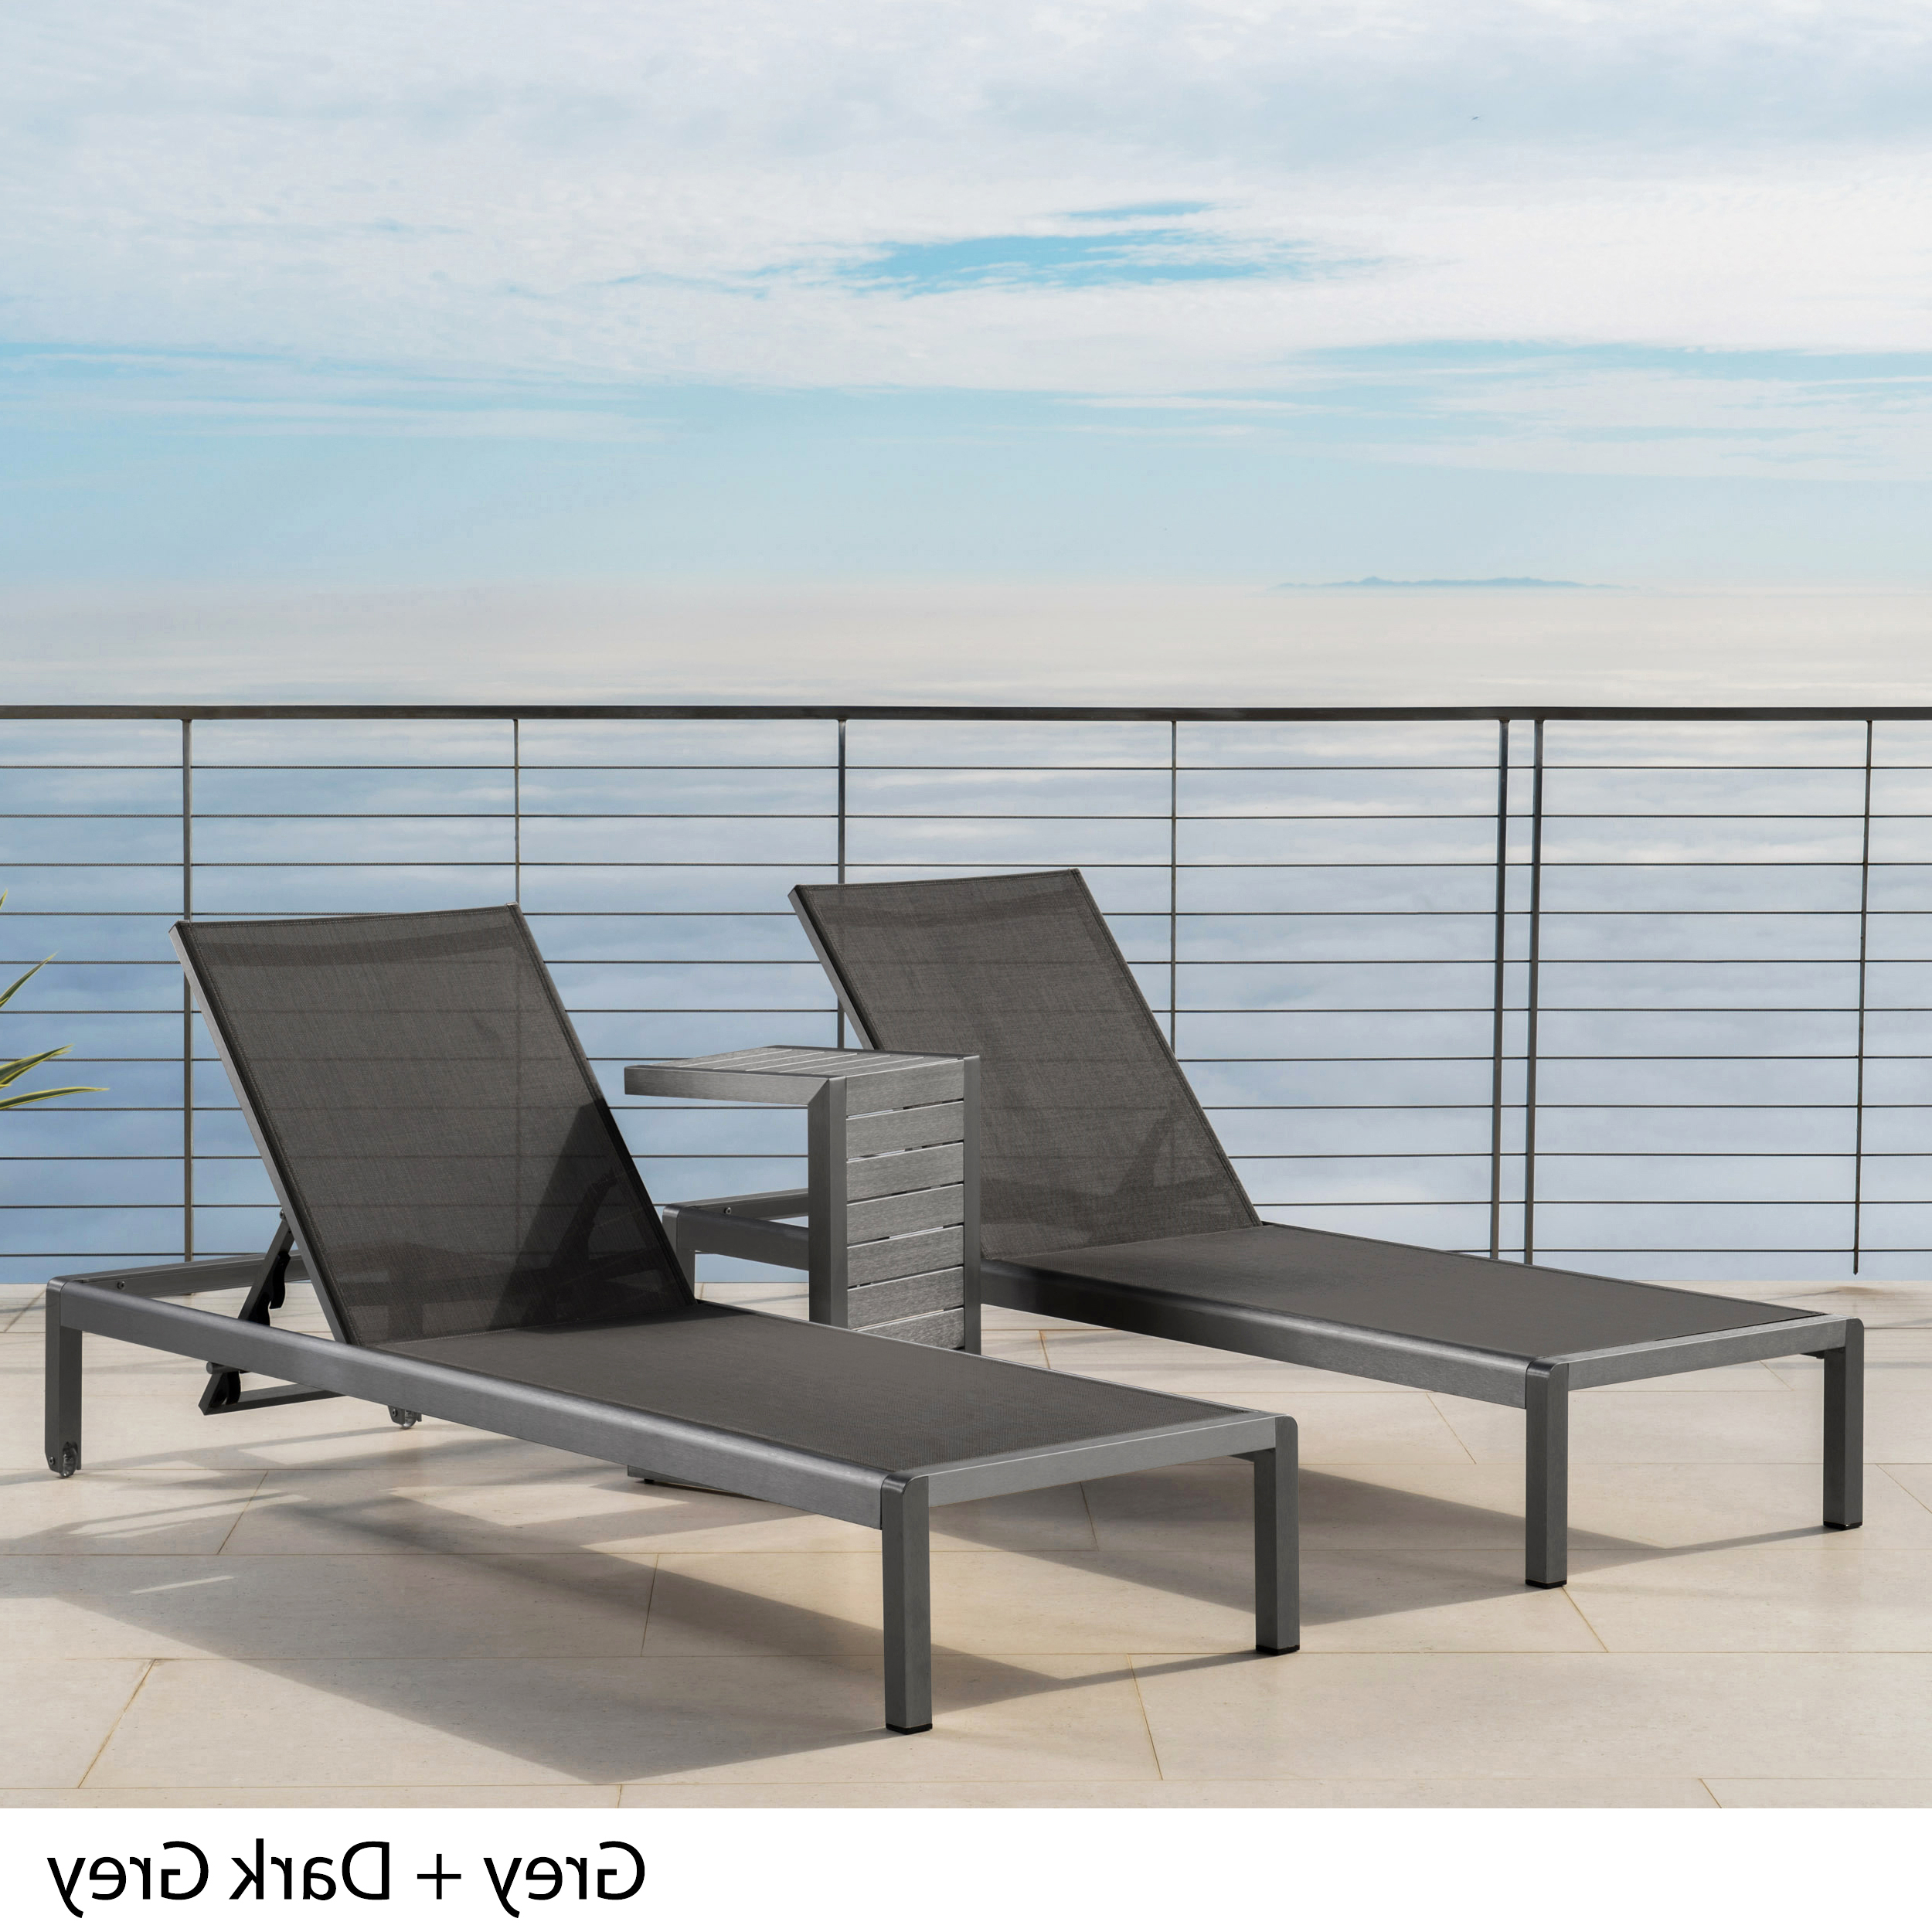 Cape Coral Outdoor Aluminum Chaise Lounges Within Most Current Details About Coral Bay Outdoor Gray Aluminum Chaise Lounge And C Shaped Side Table (View 4 of 25)